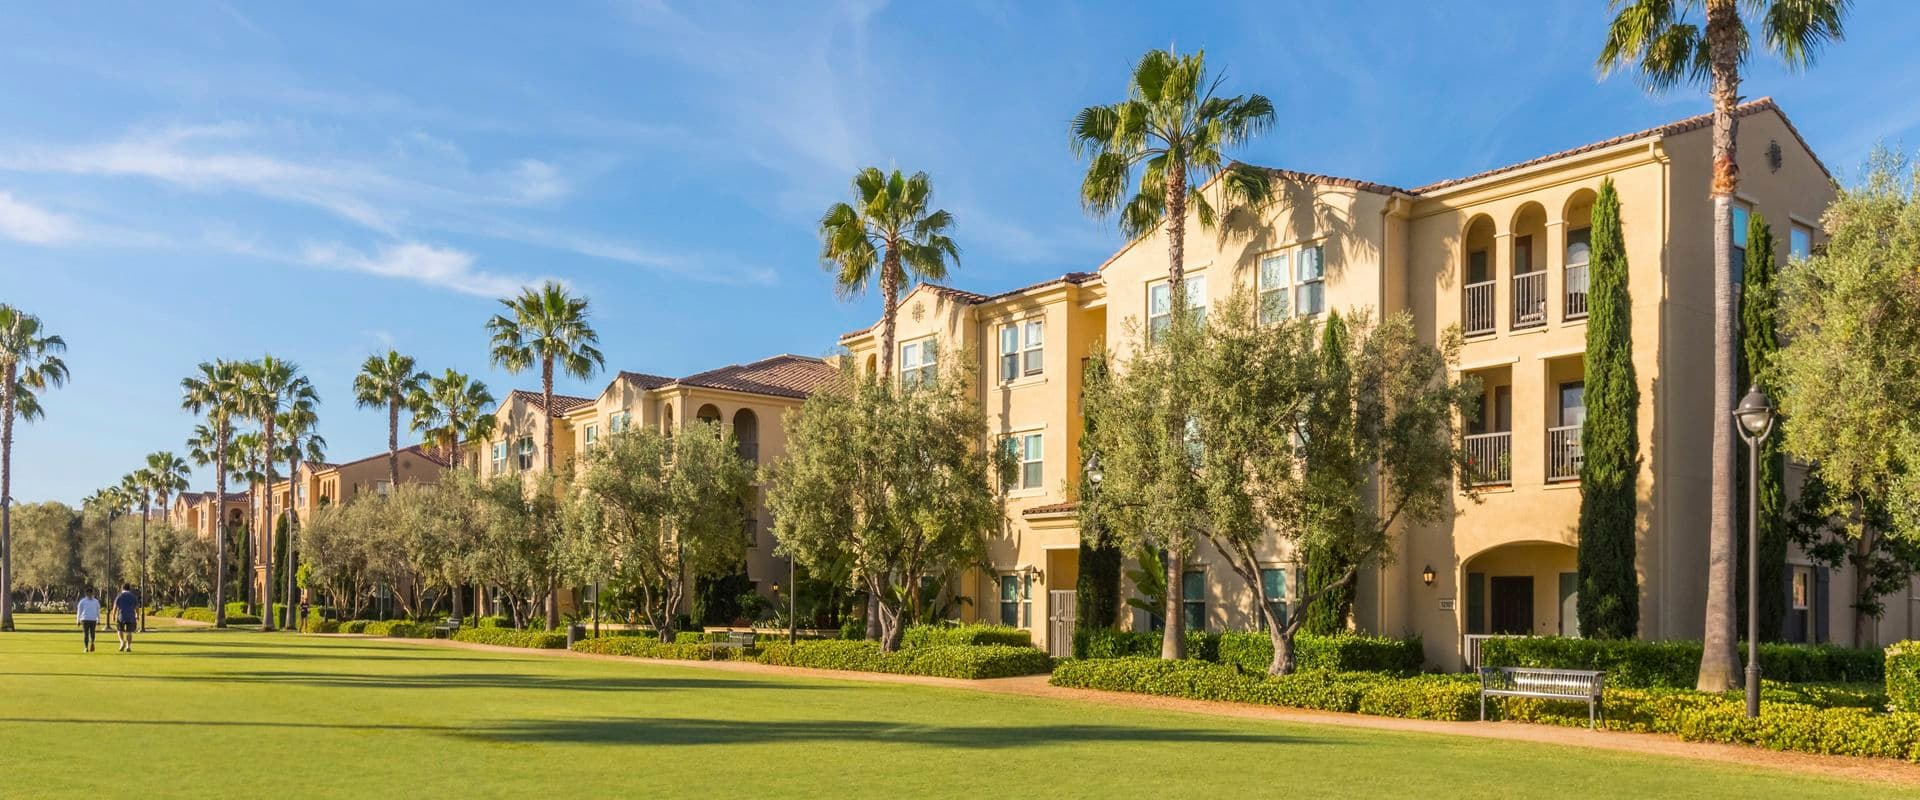 Exterior view of open space at Los Olivos at Irvine Spectrum Apartment Homes in Irvine, CA.